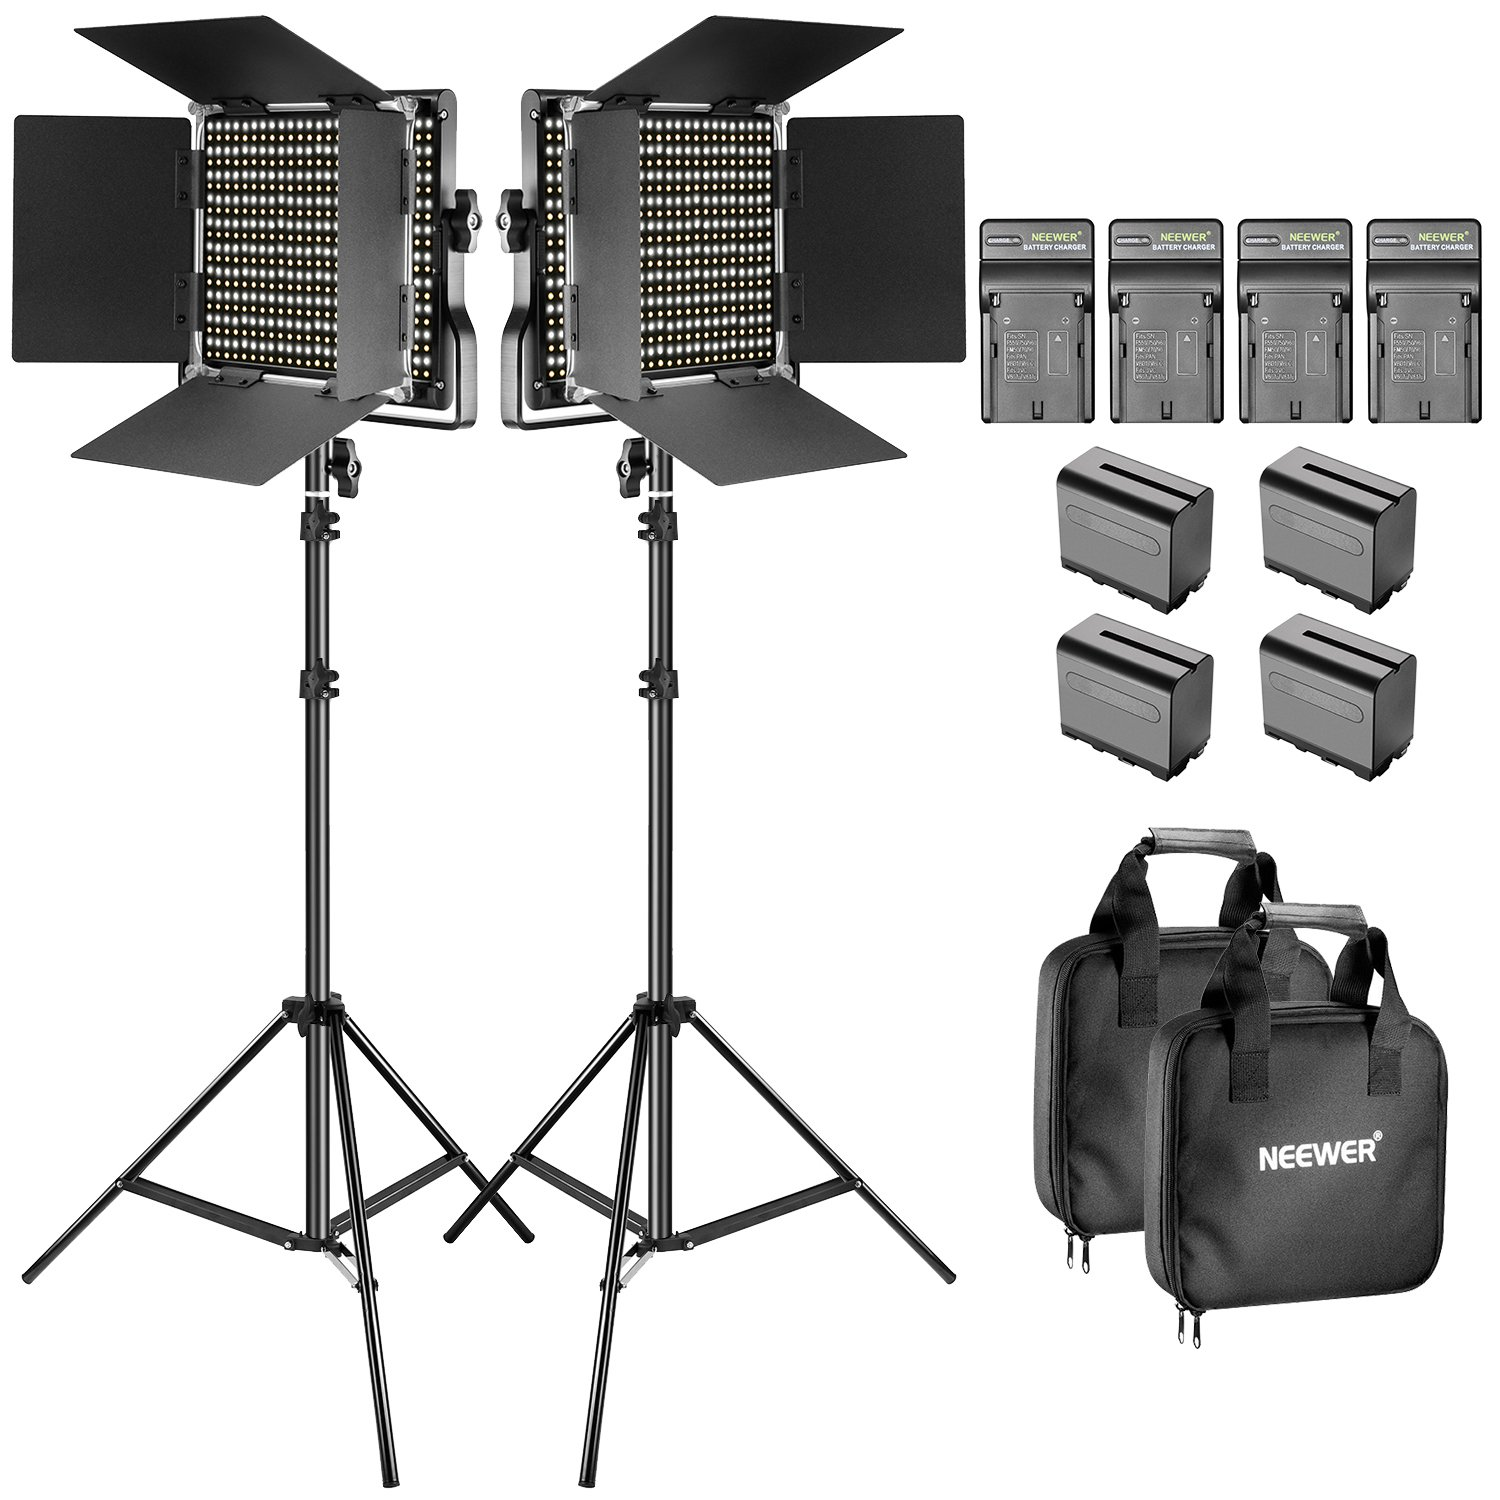 Neewer Bi-Color LED Video Light and Stand Kit with Battery and Charger-660 LED with U Bracket and Barndoor(3200-5600K, CRI 96+), 3-6.5 Feet Adjustable Light Stand for Studio, YouTube Shooting (2 pack) by Neewer